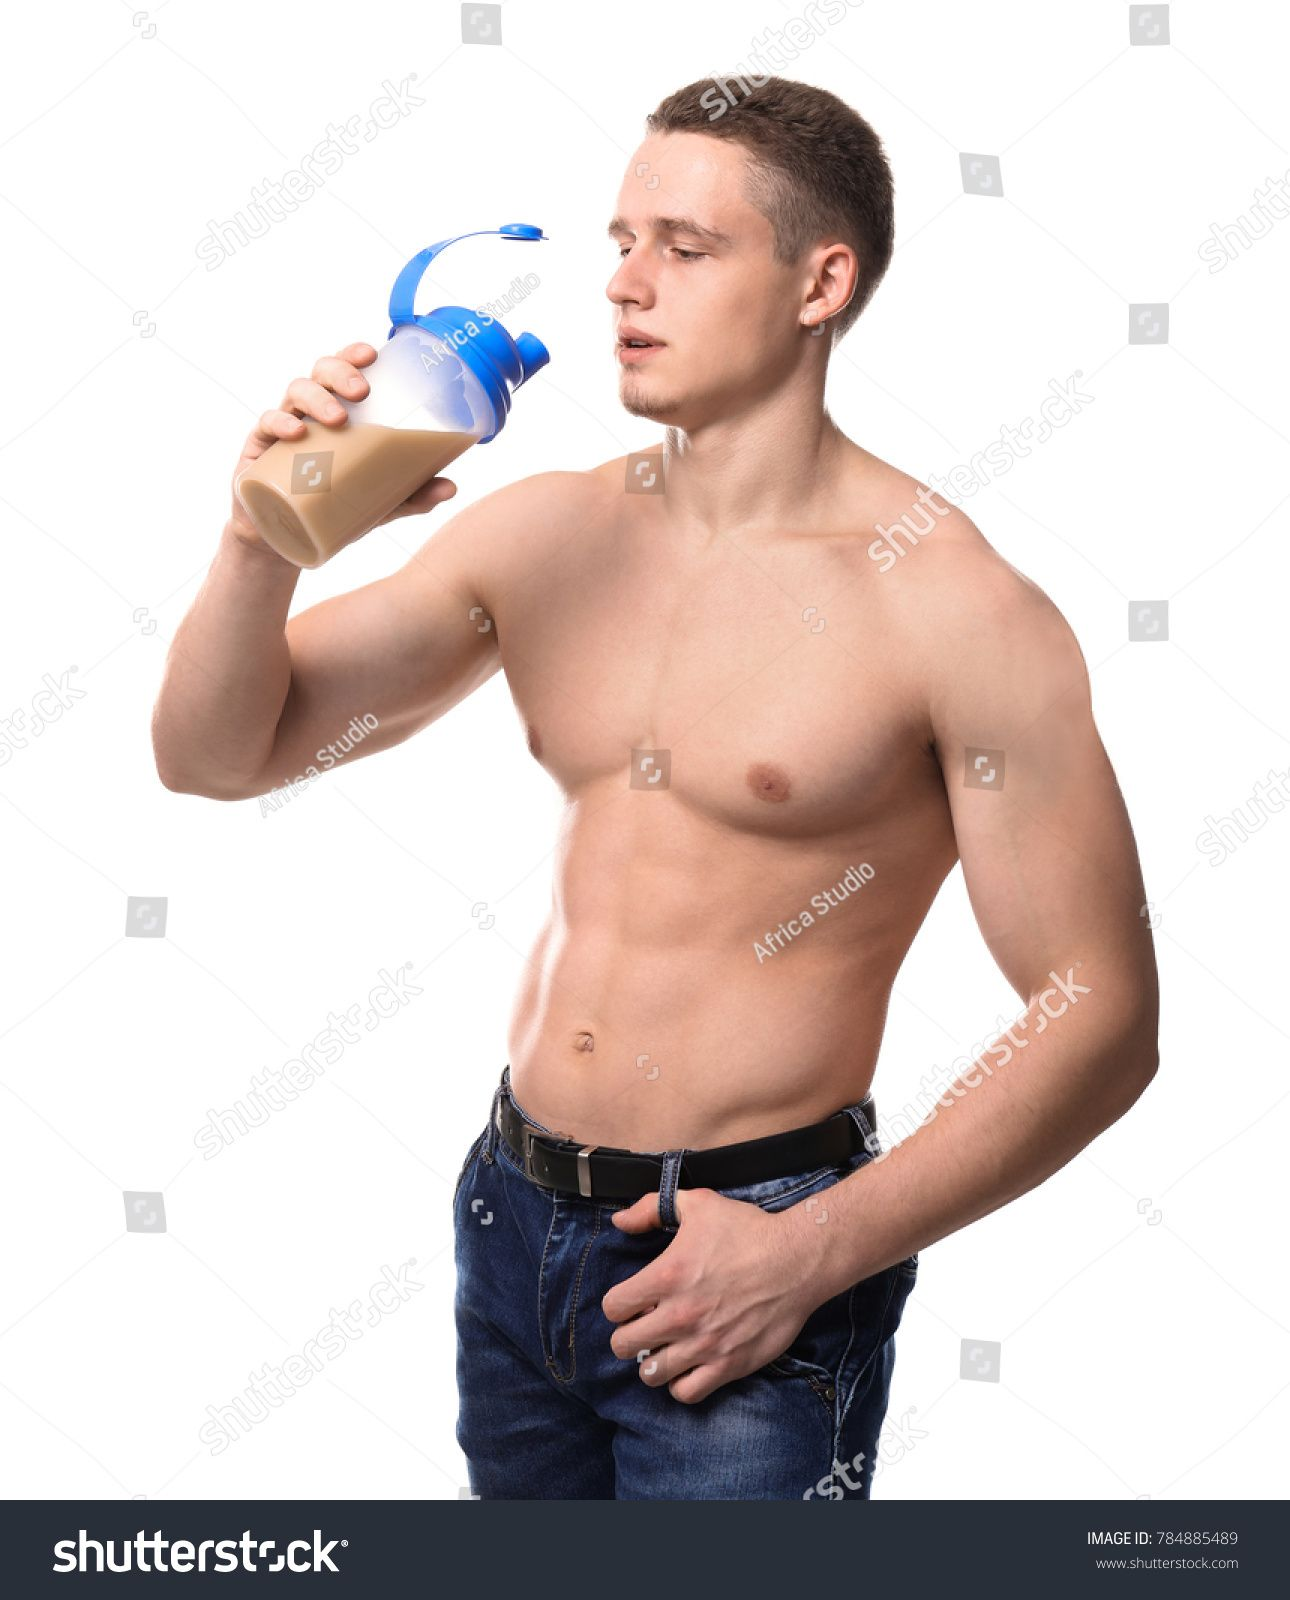 Muscular young bodybuilder with bottle of protein cocktail on white background #Ad , #AD, #bodybuilder#bottle#Muscular#young